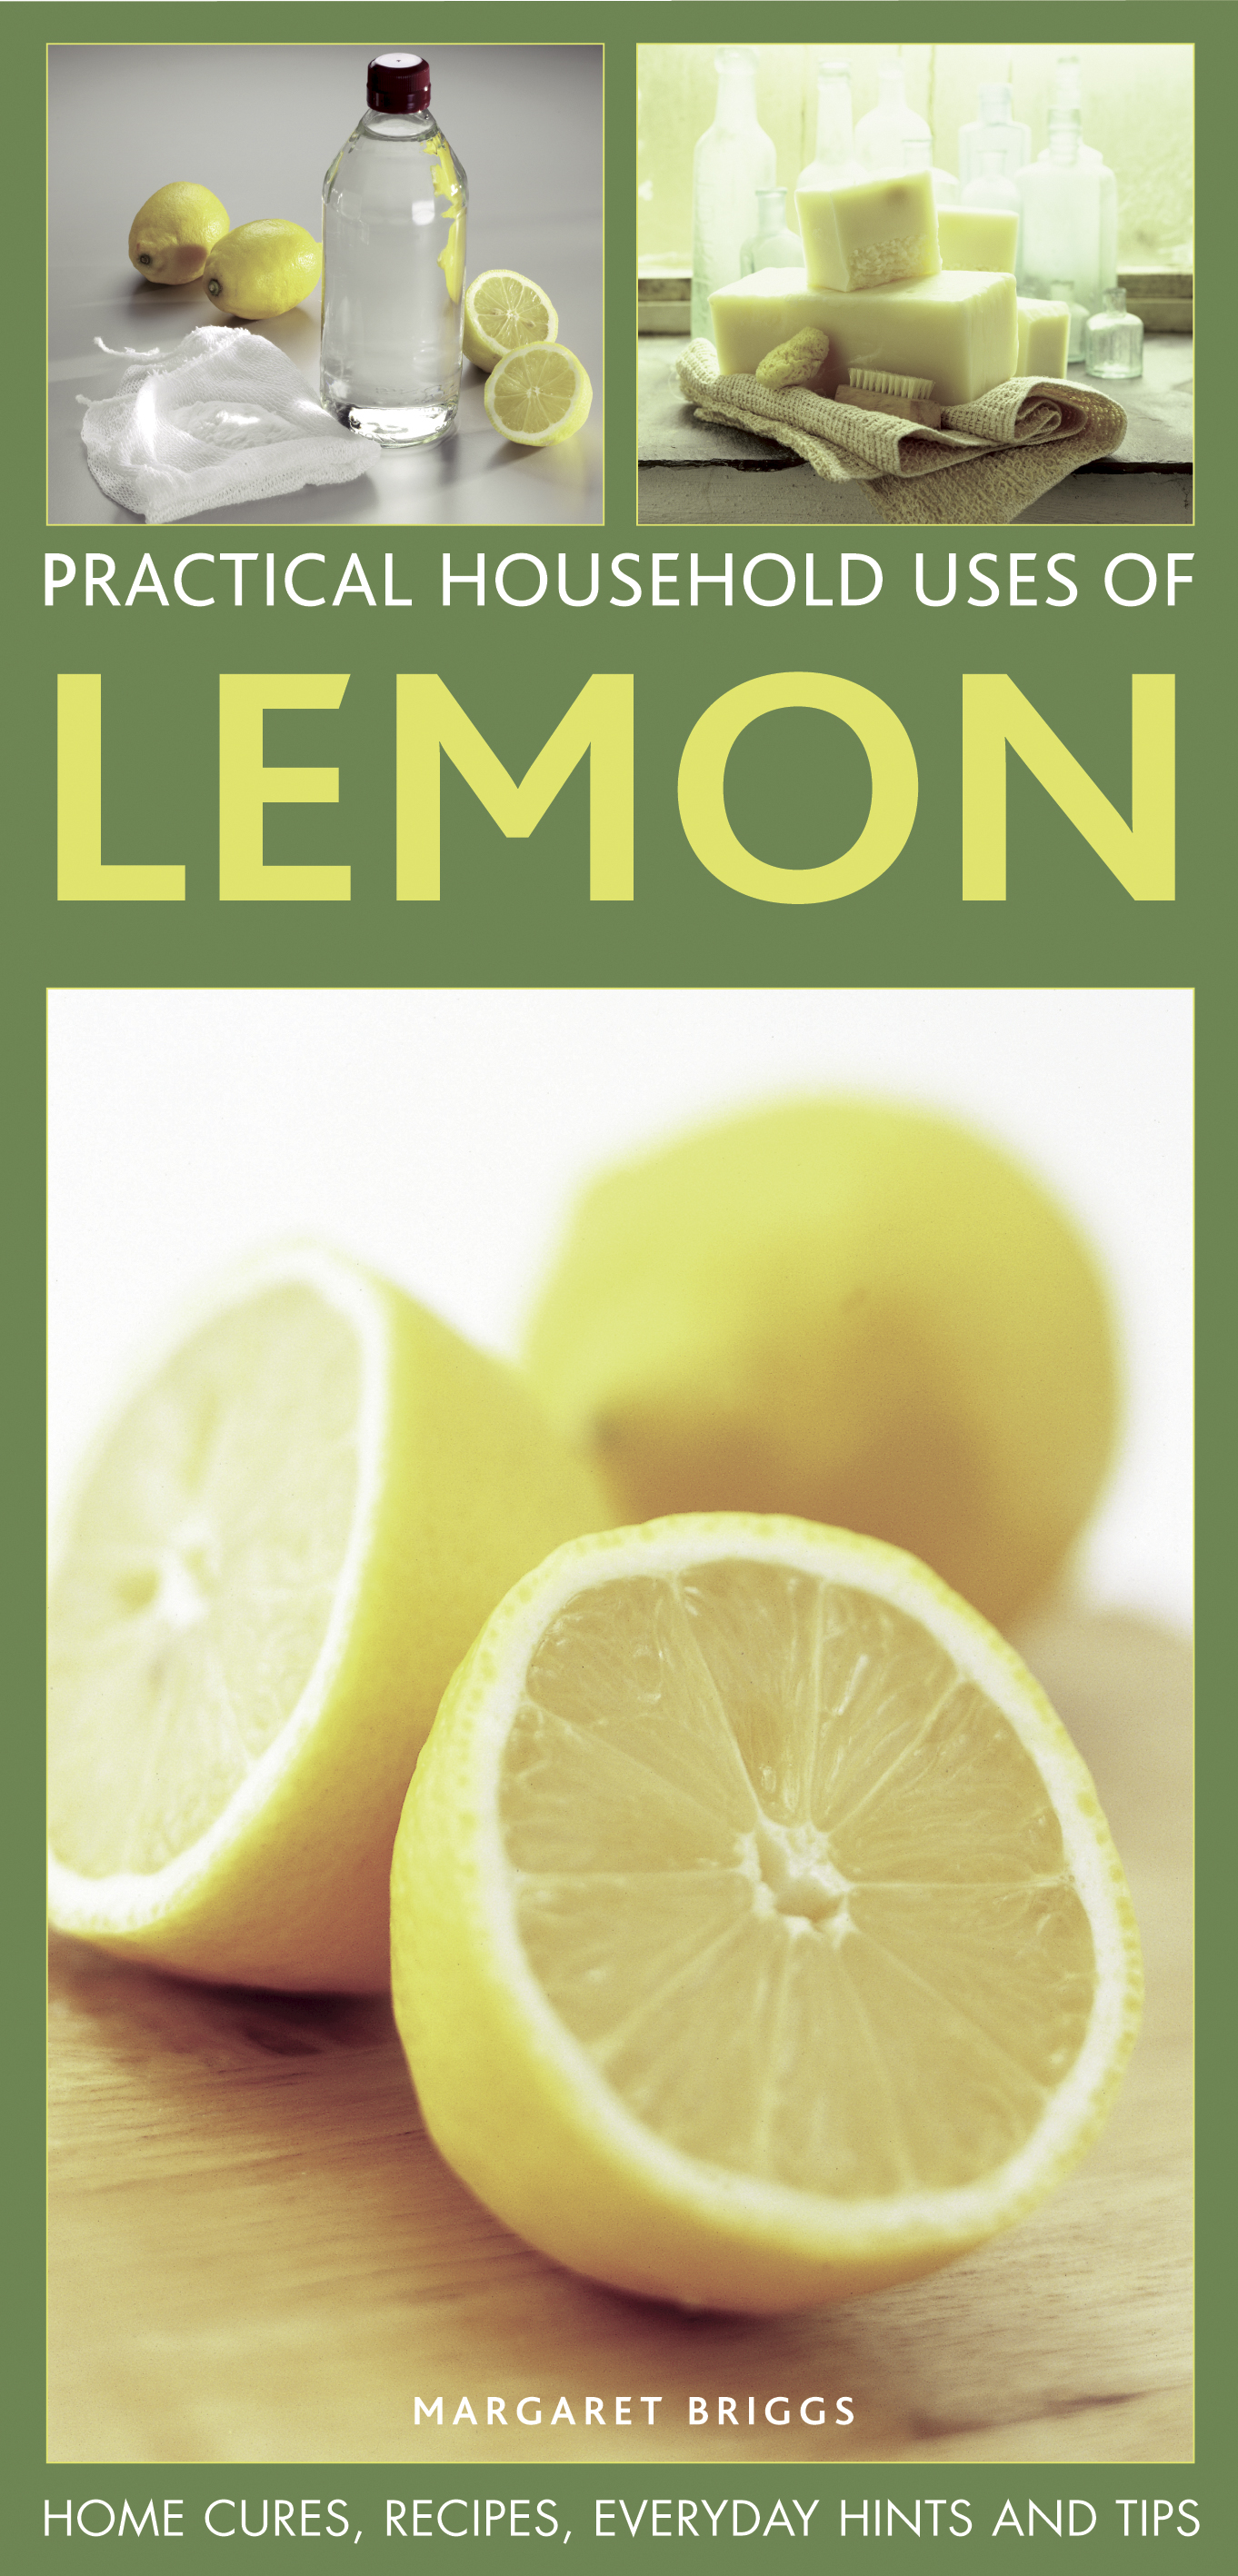 Practical Household Uses of Lemon Home Cures,  Recipes,  Everyday Hints and Tips